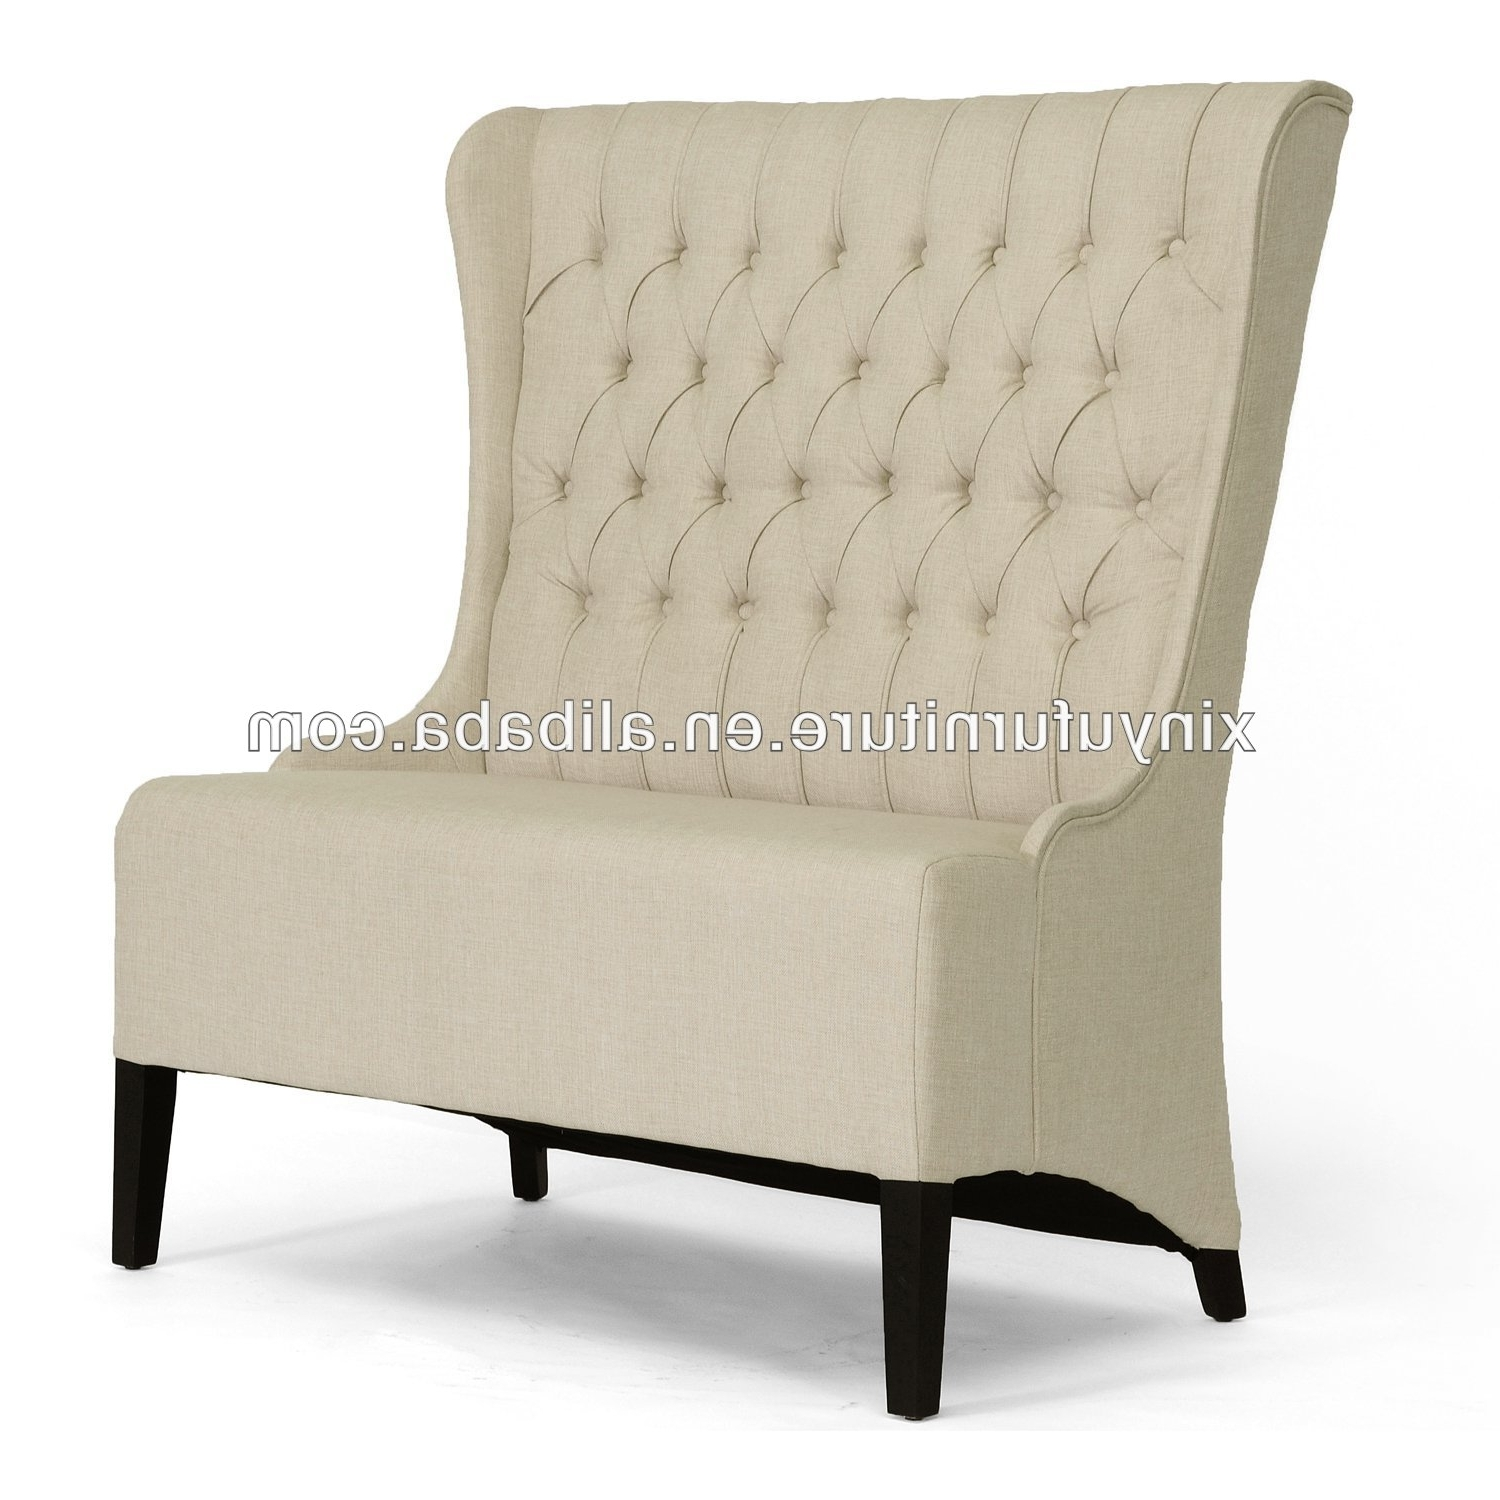 Modern White High Back Loveseat Furniture, Modern White High Back With Best And Newest High Back Sofas And Chairs (View 16 of 20)